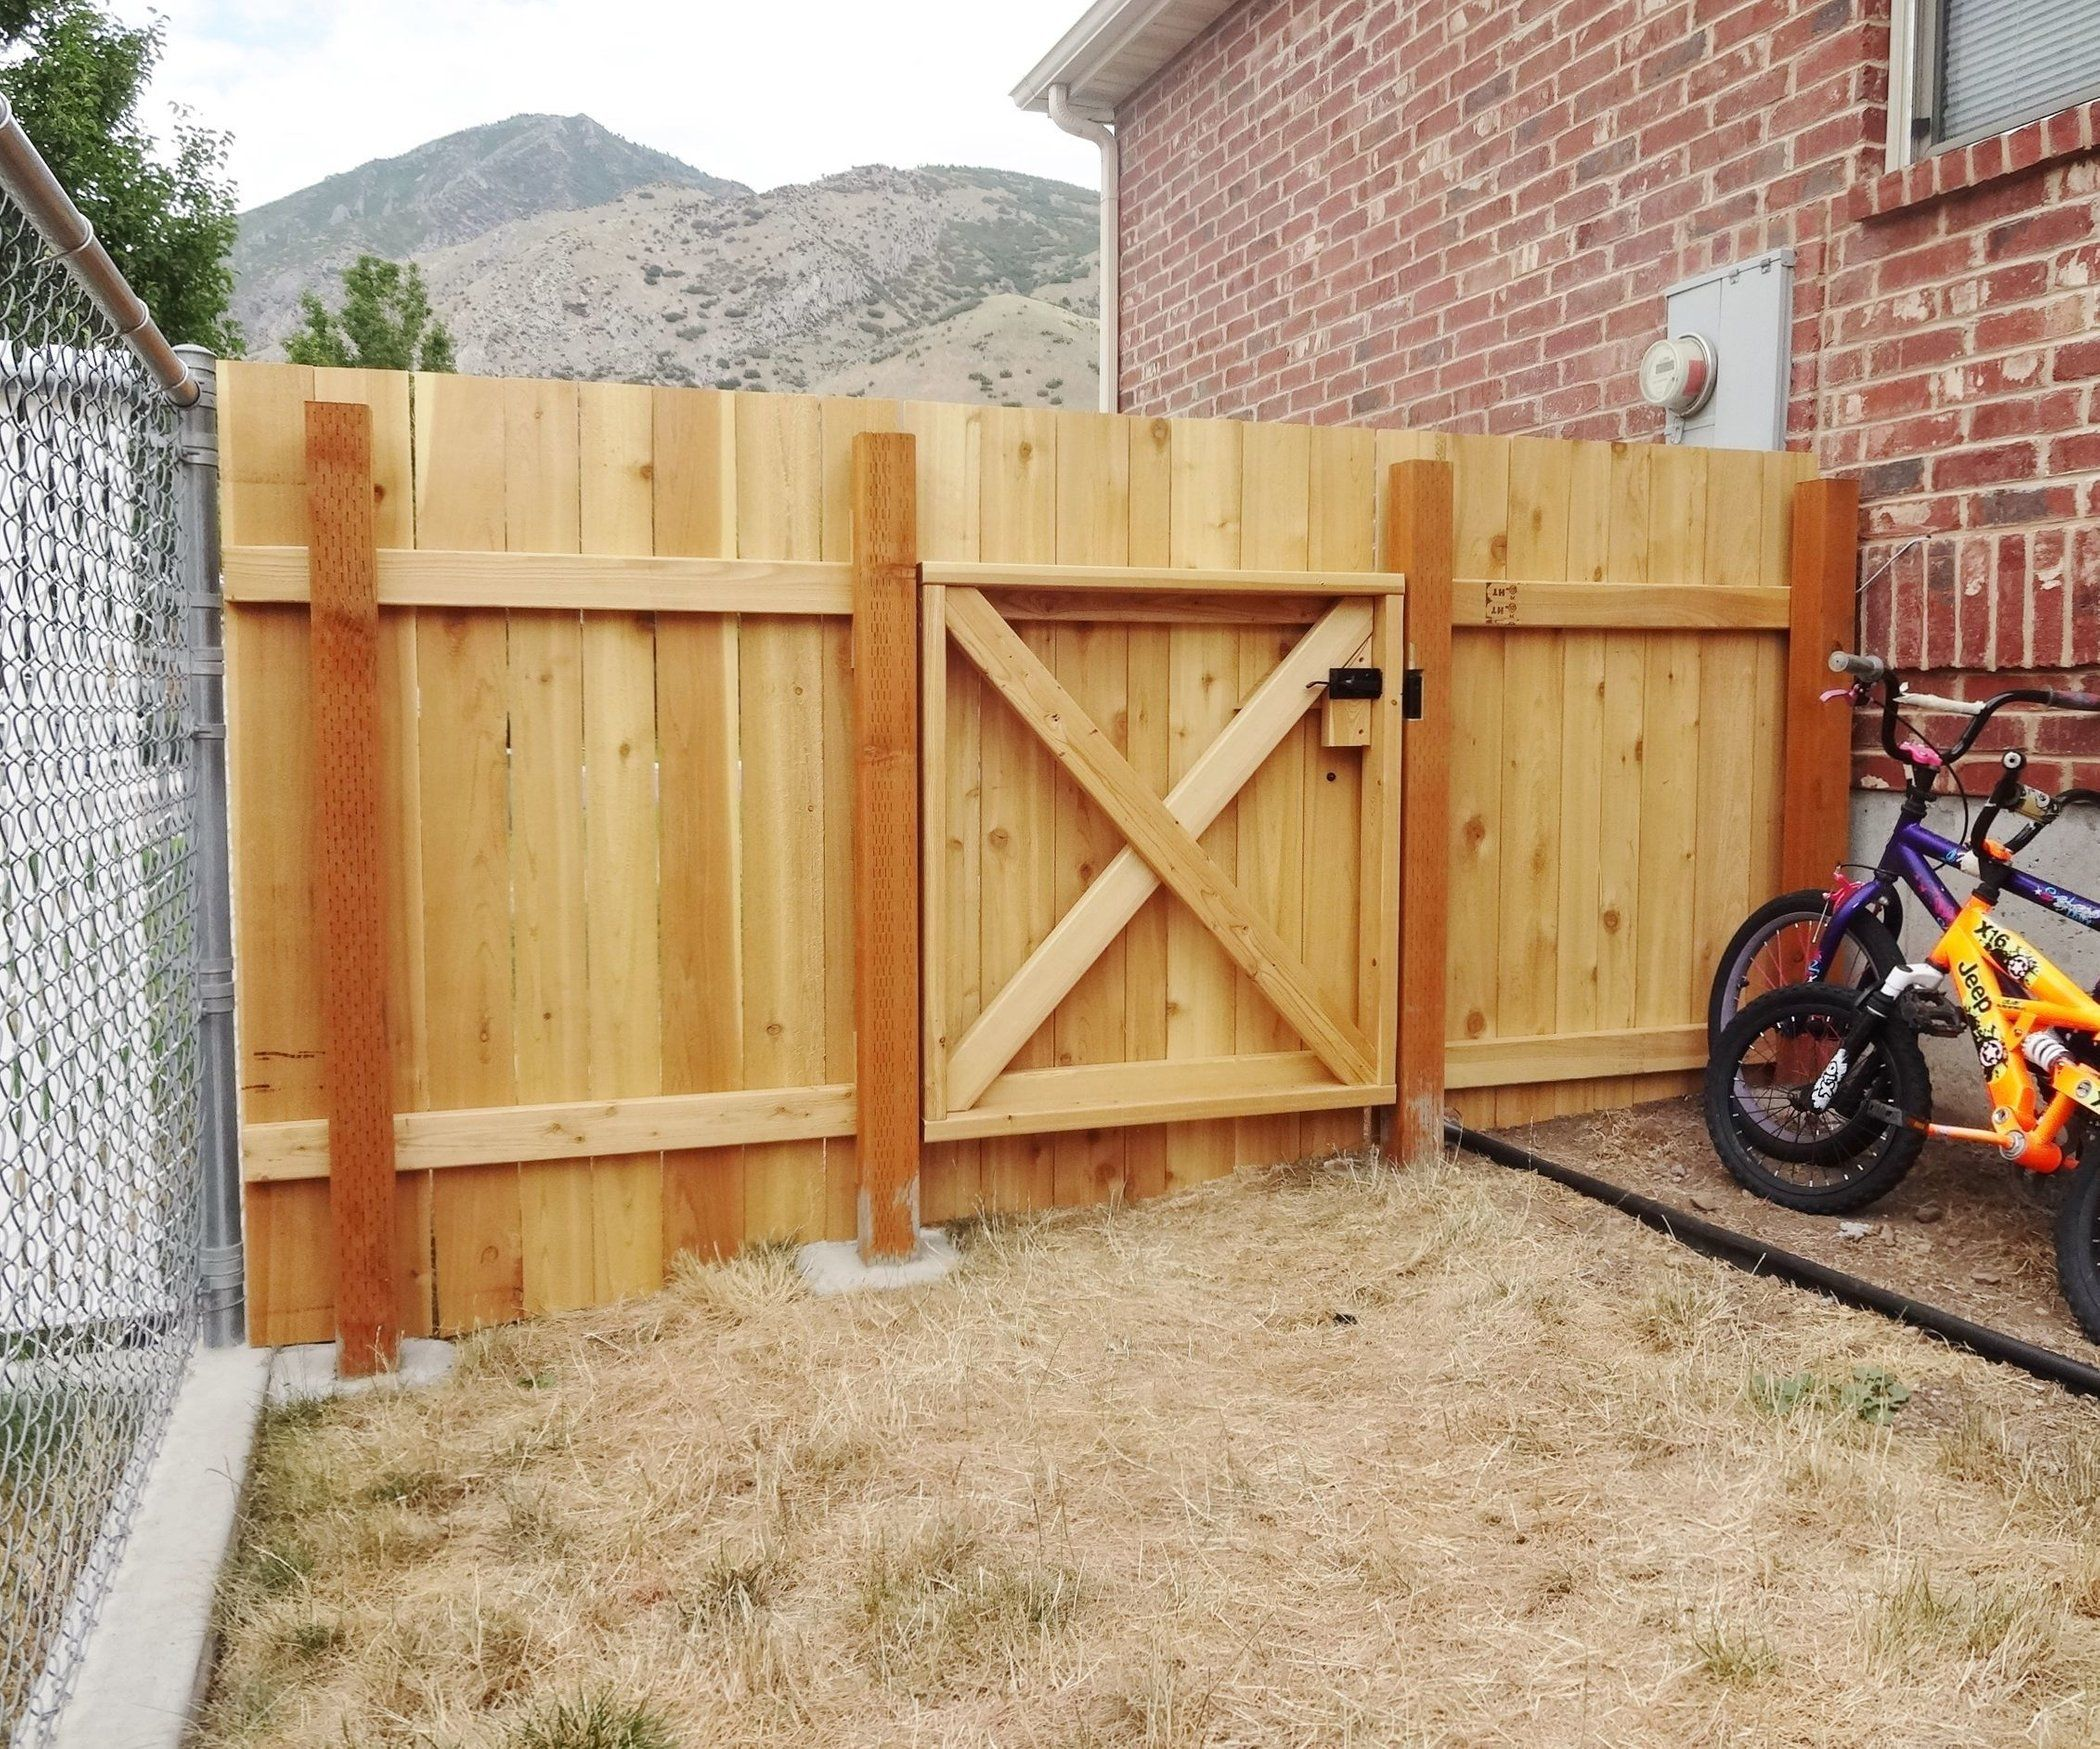 Build A Wooden Fence And Gate Wood Fence Gates Building A Wooden Gate Wooden Fence Gate